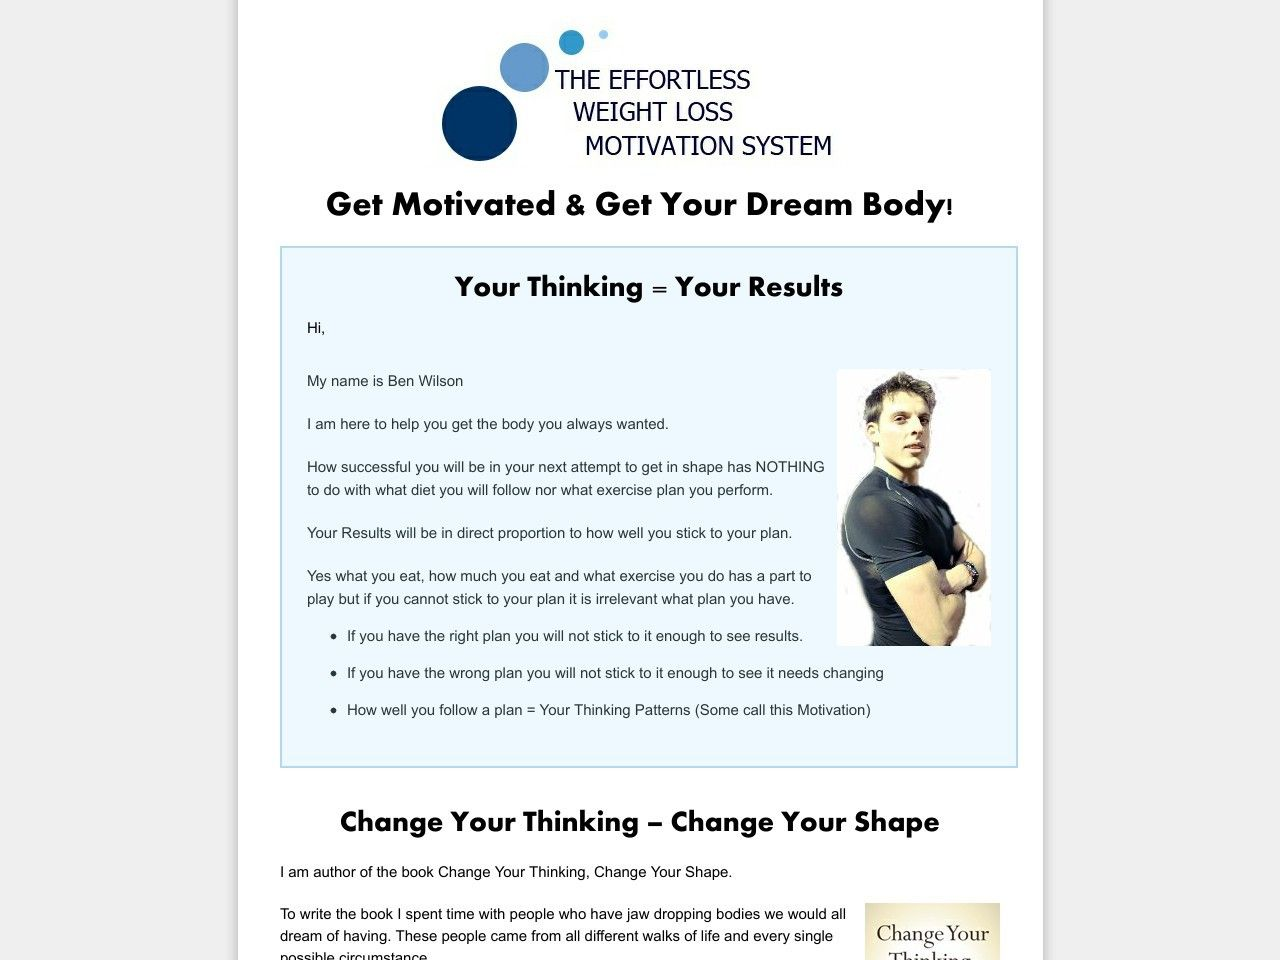 ① Weight Loss Motivation And Behaviour Change - http://www.vnulab.be/lab-review/%e2%91%a0-weight-loss-motivation-and-behaviour-change